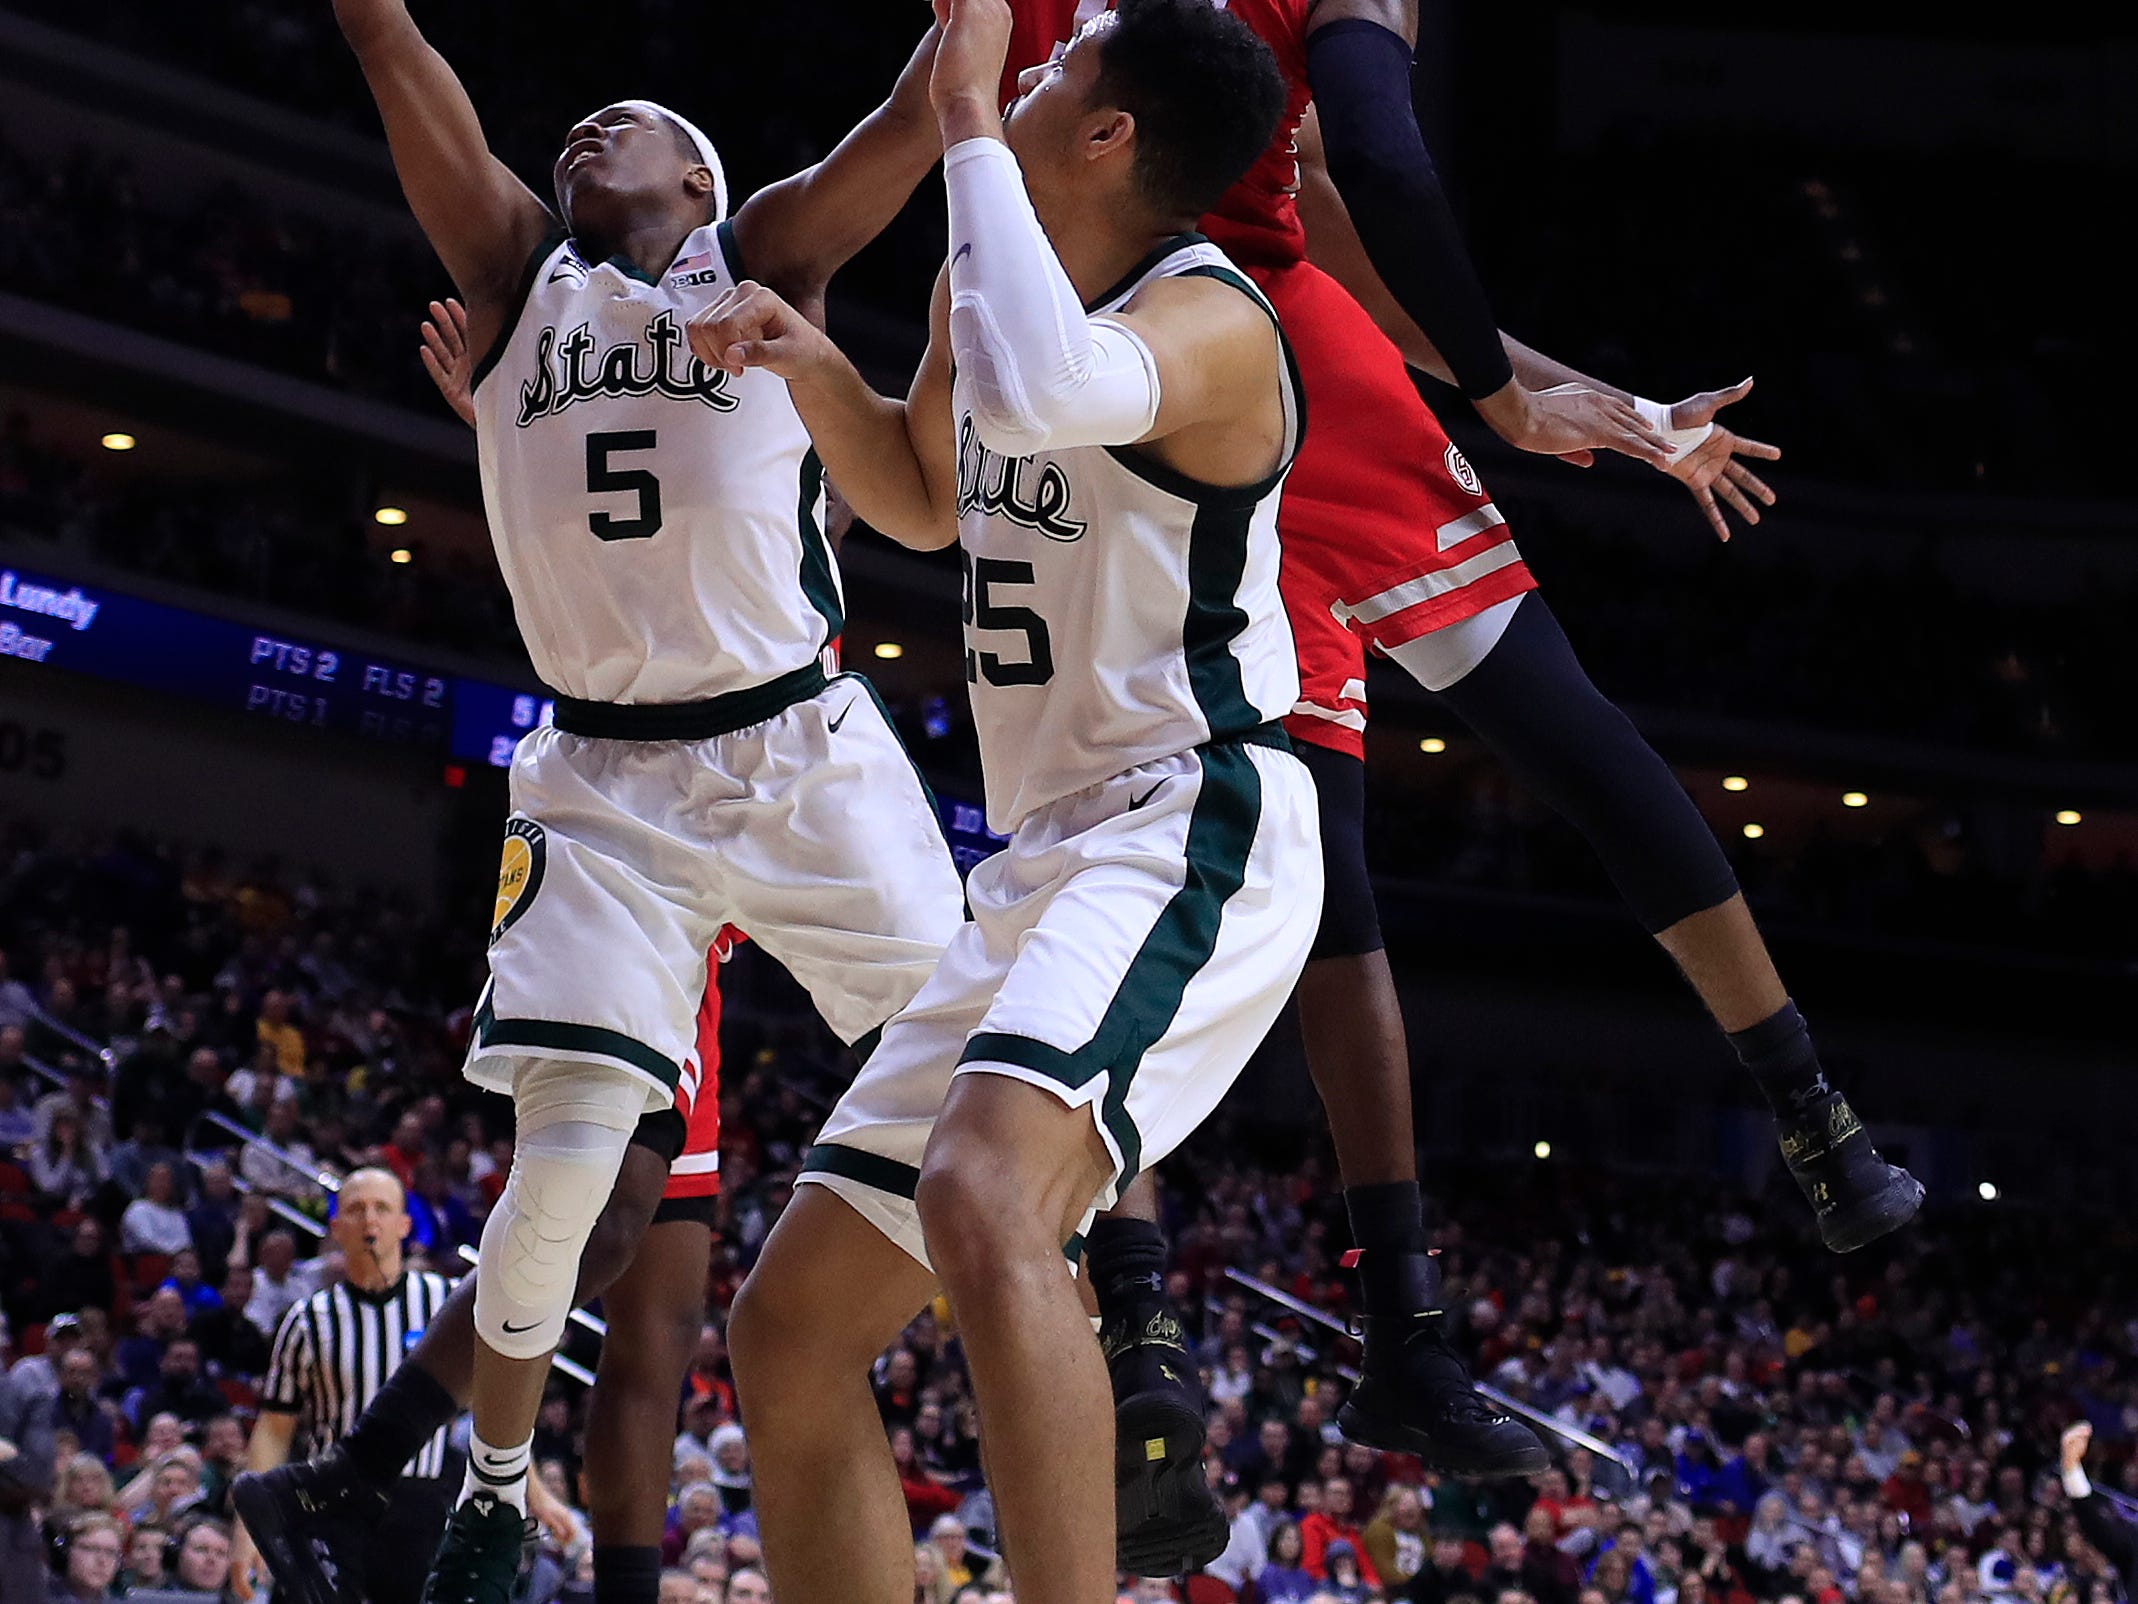 Elijah Childs #10 of the Bradley Braves defends a shot by Cassius Winston #5 of the Michigan State Spartans during their game in the First Round of the NCAA Basketball Tournament at Wells Fargo Arena on March 21, 2019 in Des Moines, Iowa.